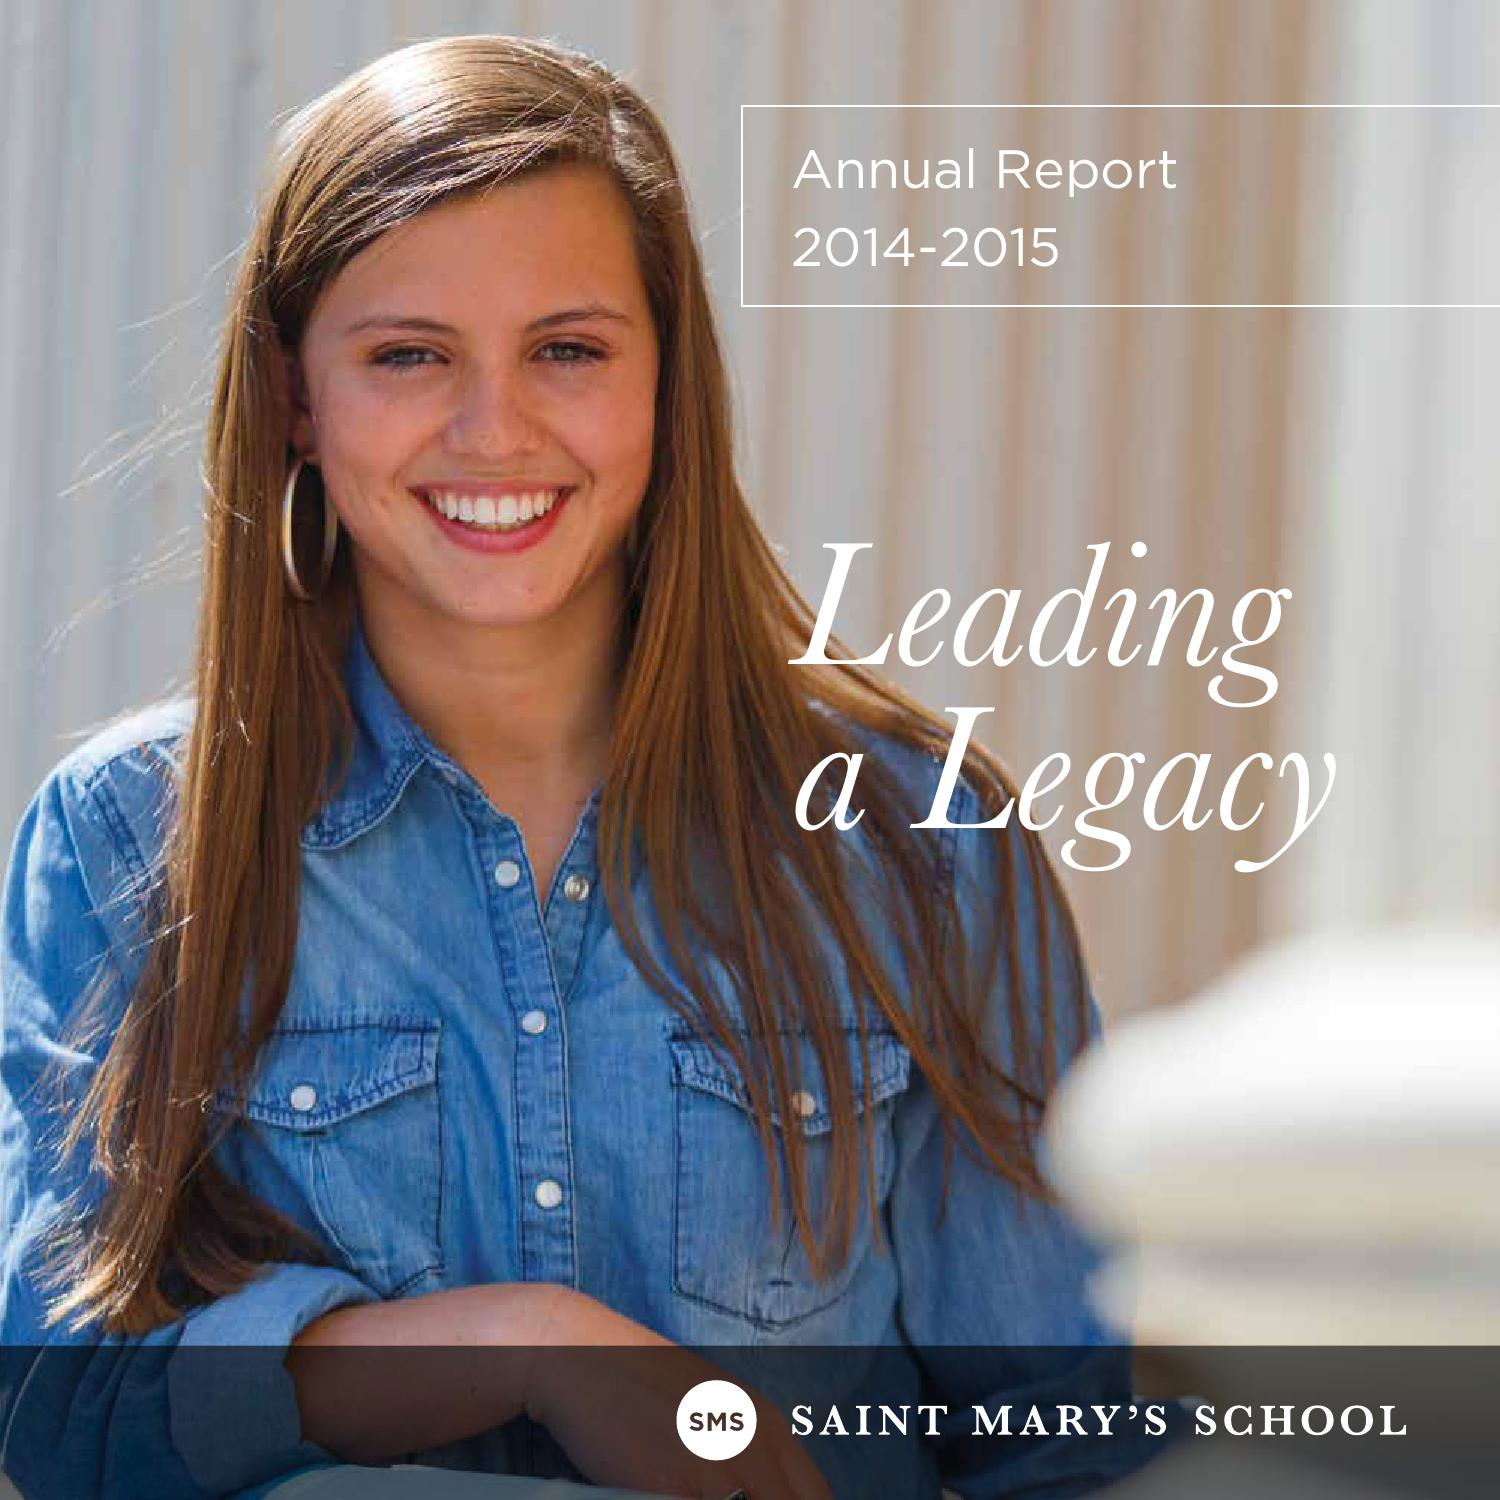 Saint Mary S Annual Report 2014 2015 By Saint Mary S